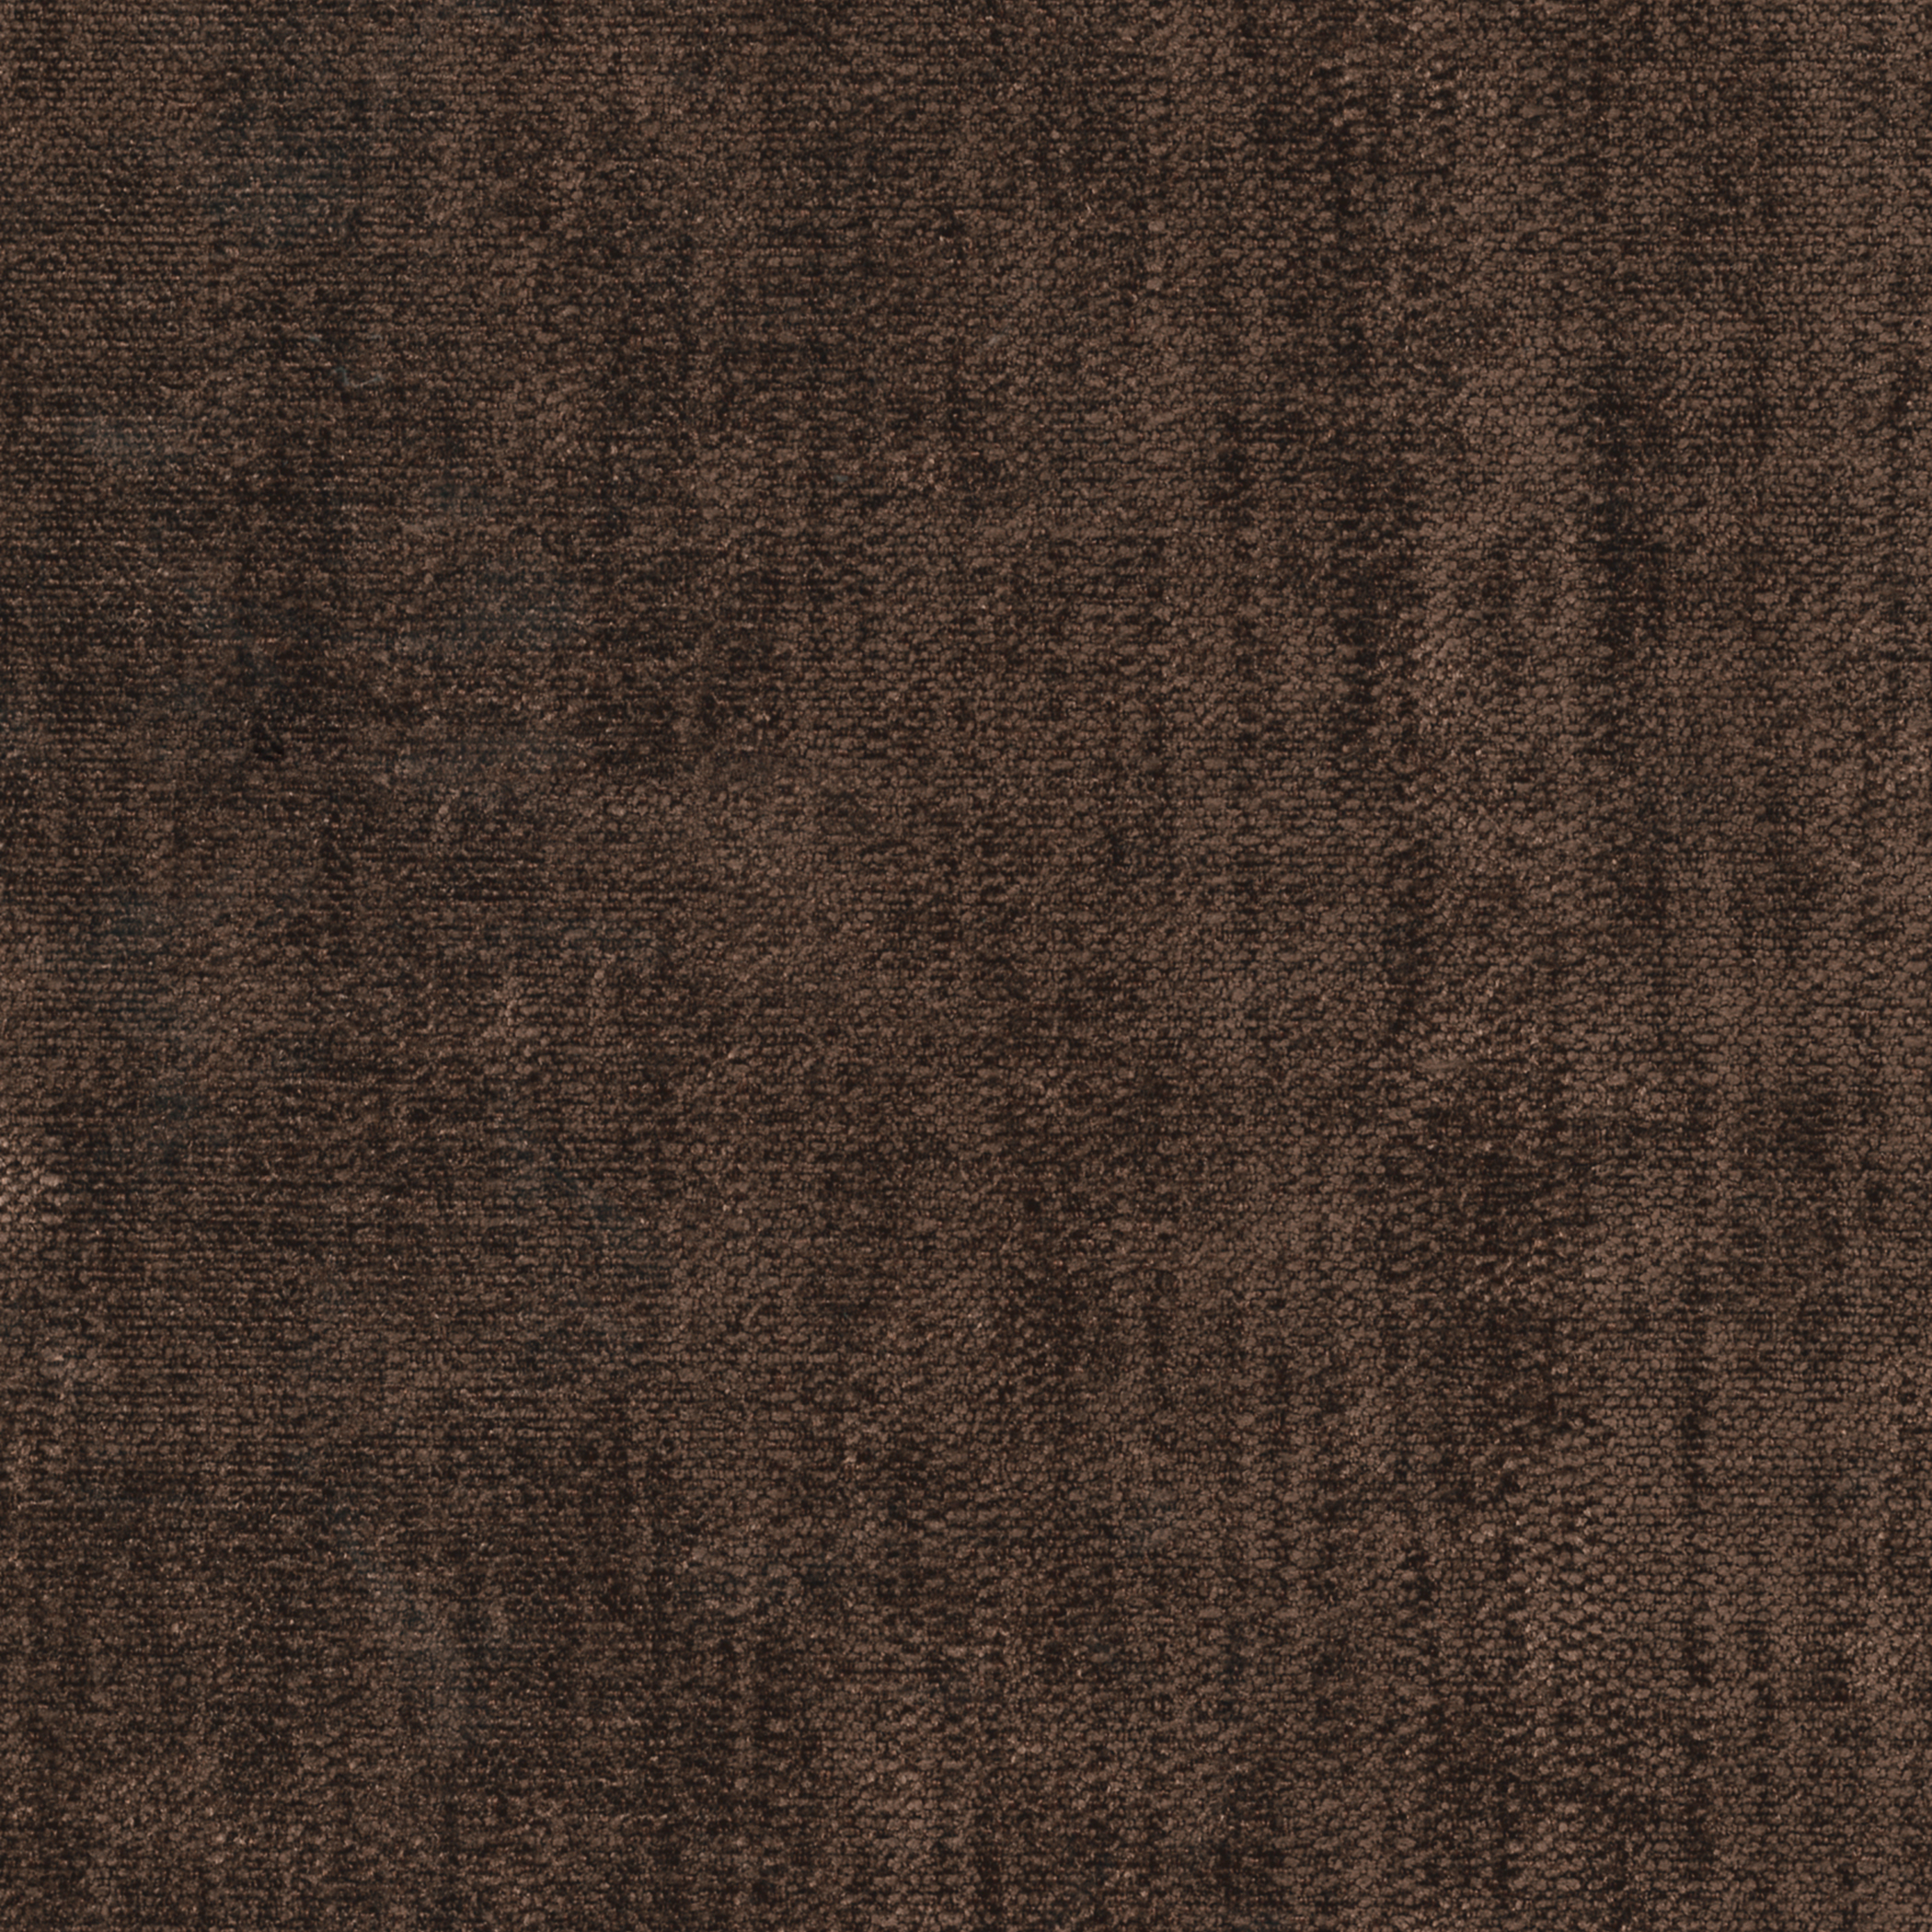 Dorian Muddy Waters Brown And Chocolate Solid Woven